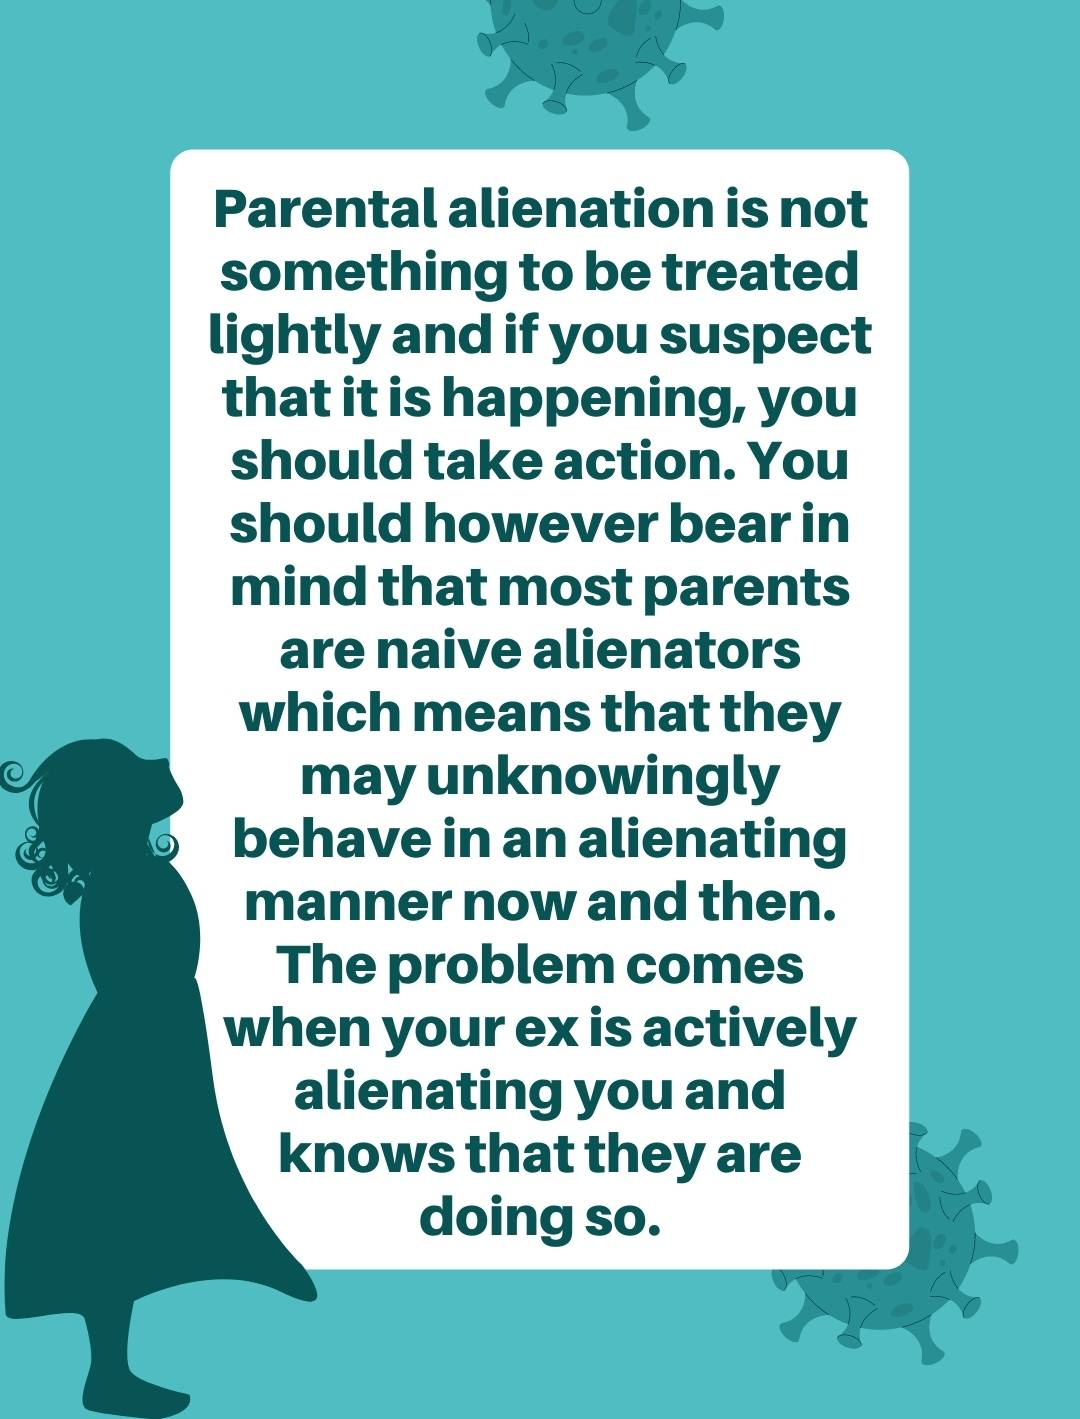 Parental alienation is not something to be treated lightly and if you suspect that it is happening, you should take action. You should however bear in mind that most parents are naive alienators which means that they may unknowingly behave in an alienating manner now and then.